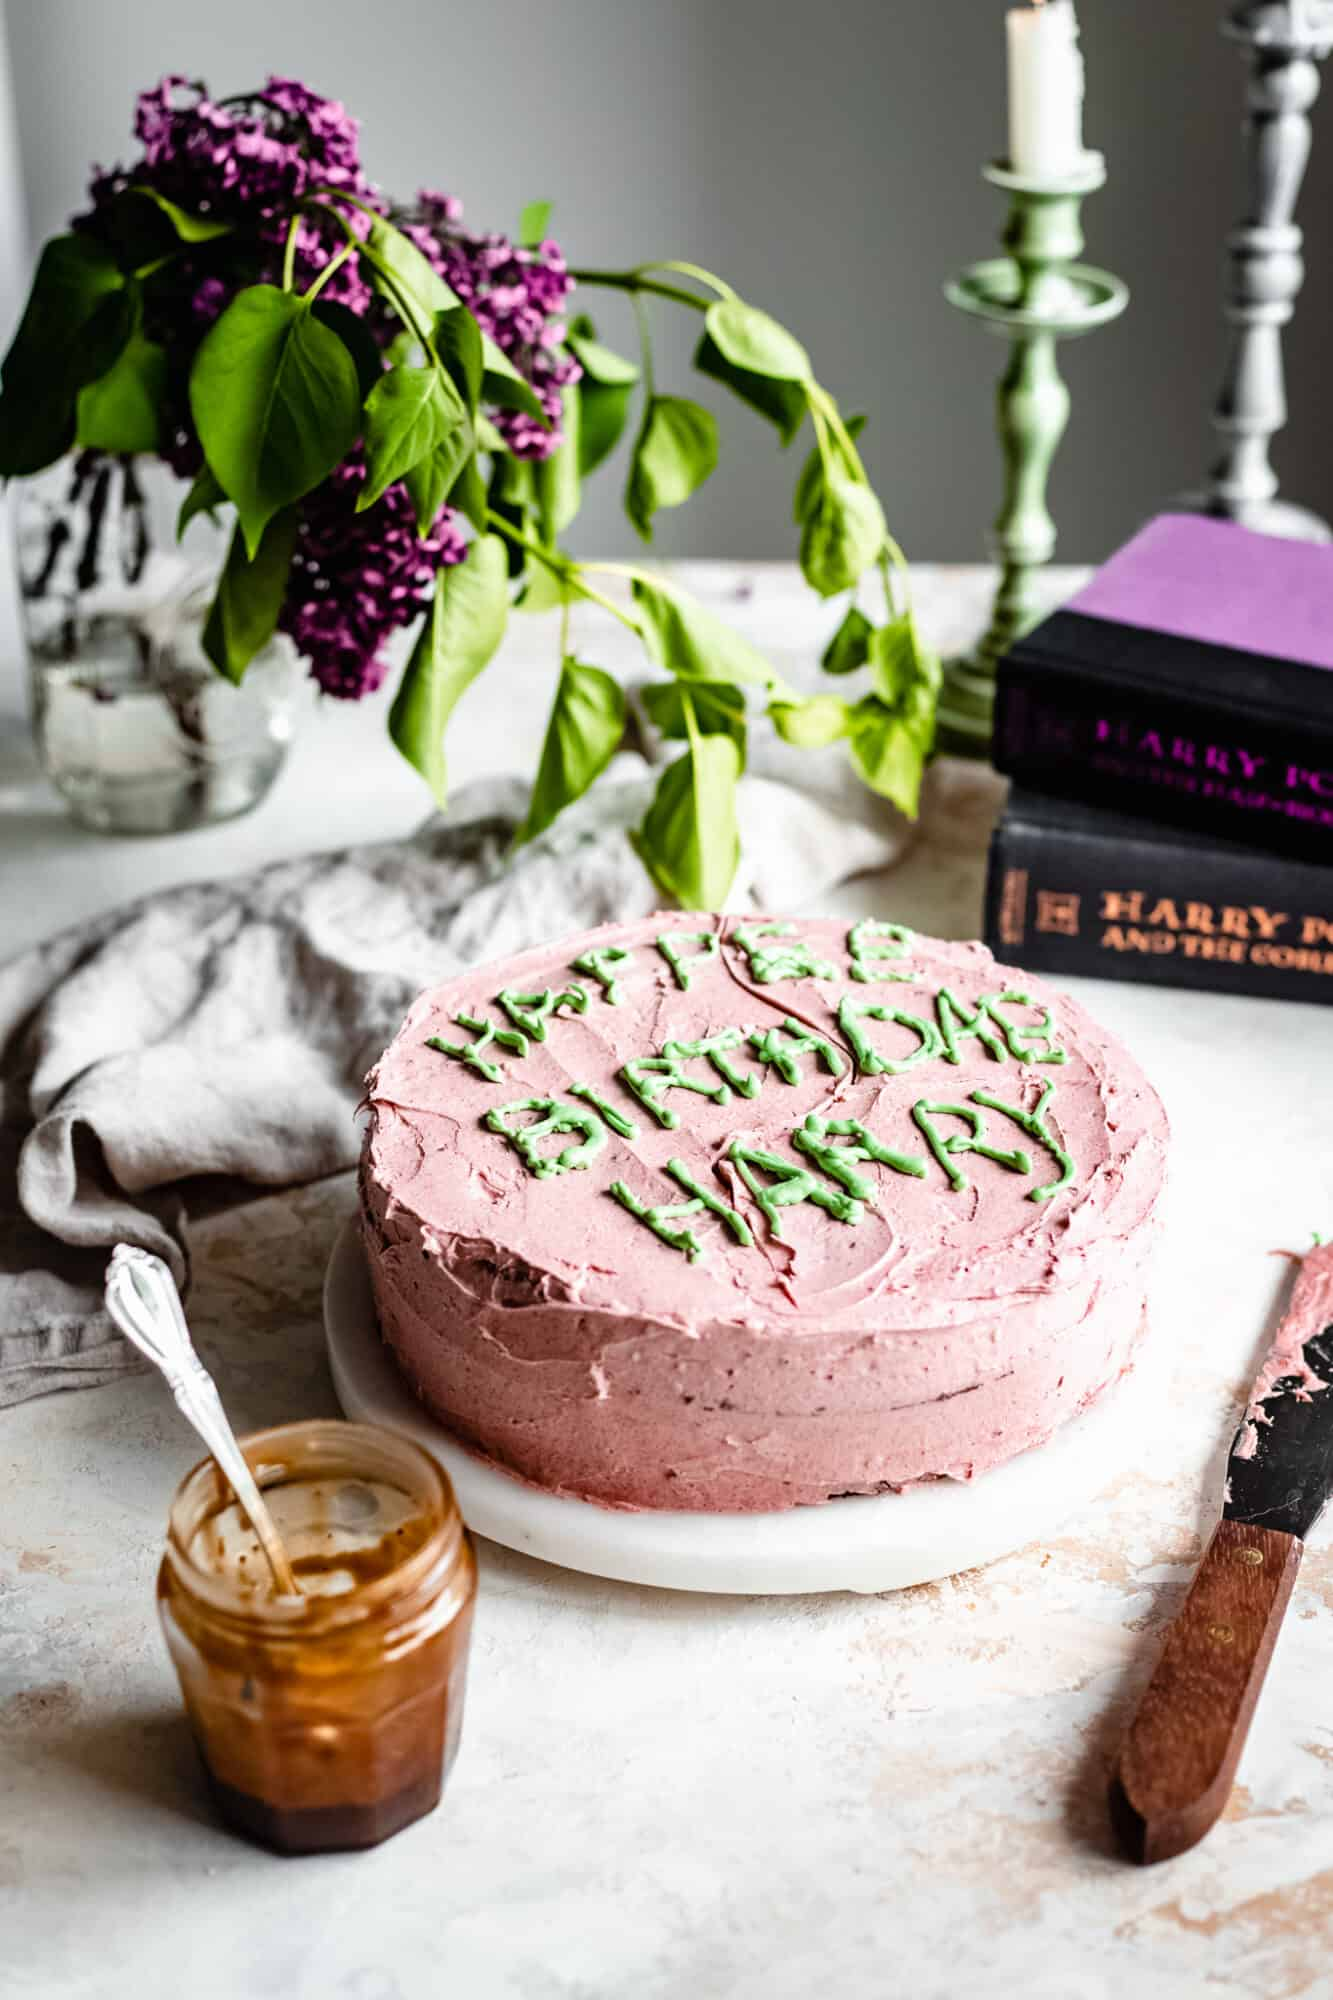 vegan harry potter cake with books next to it